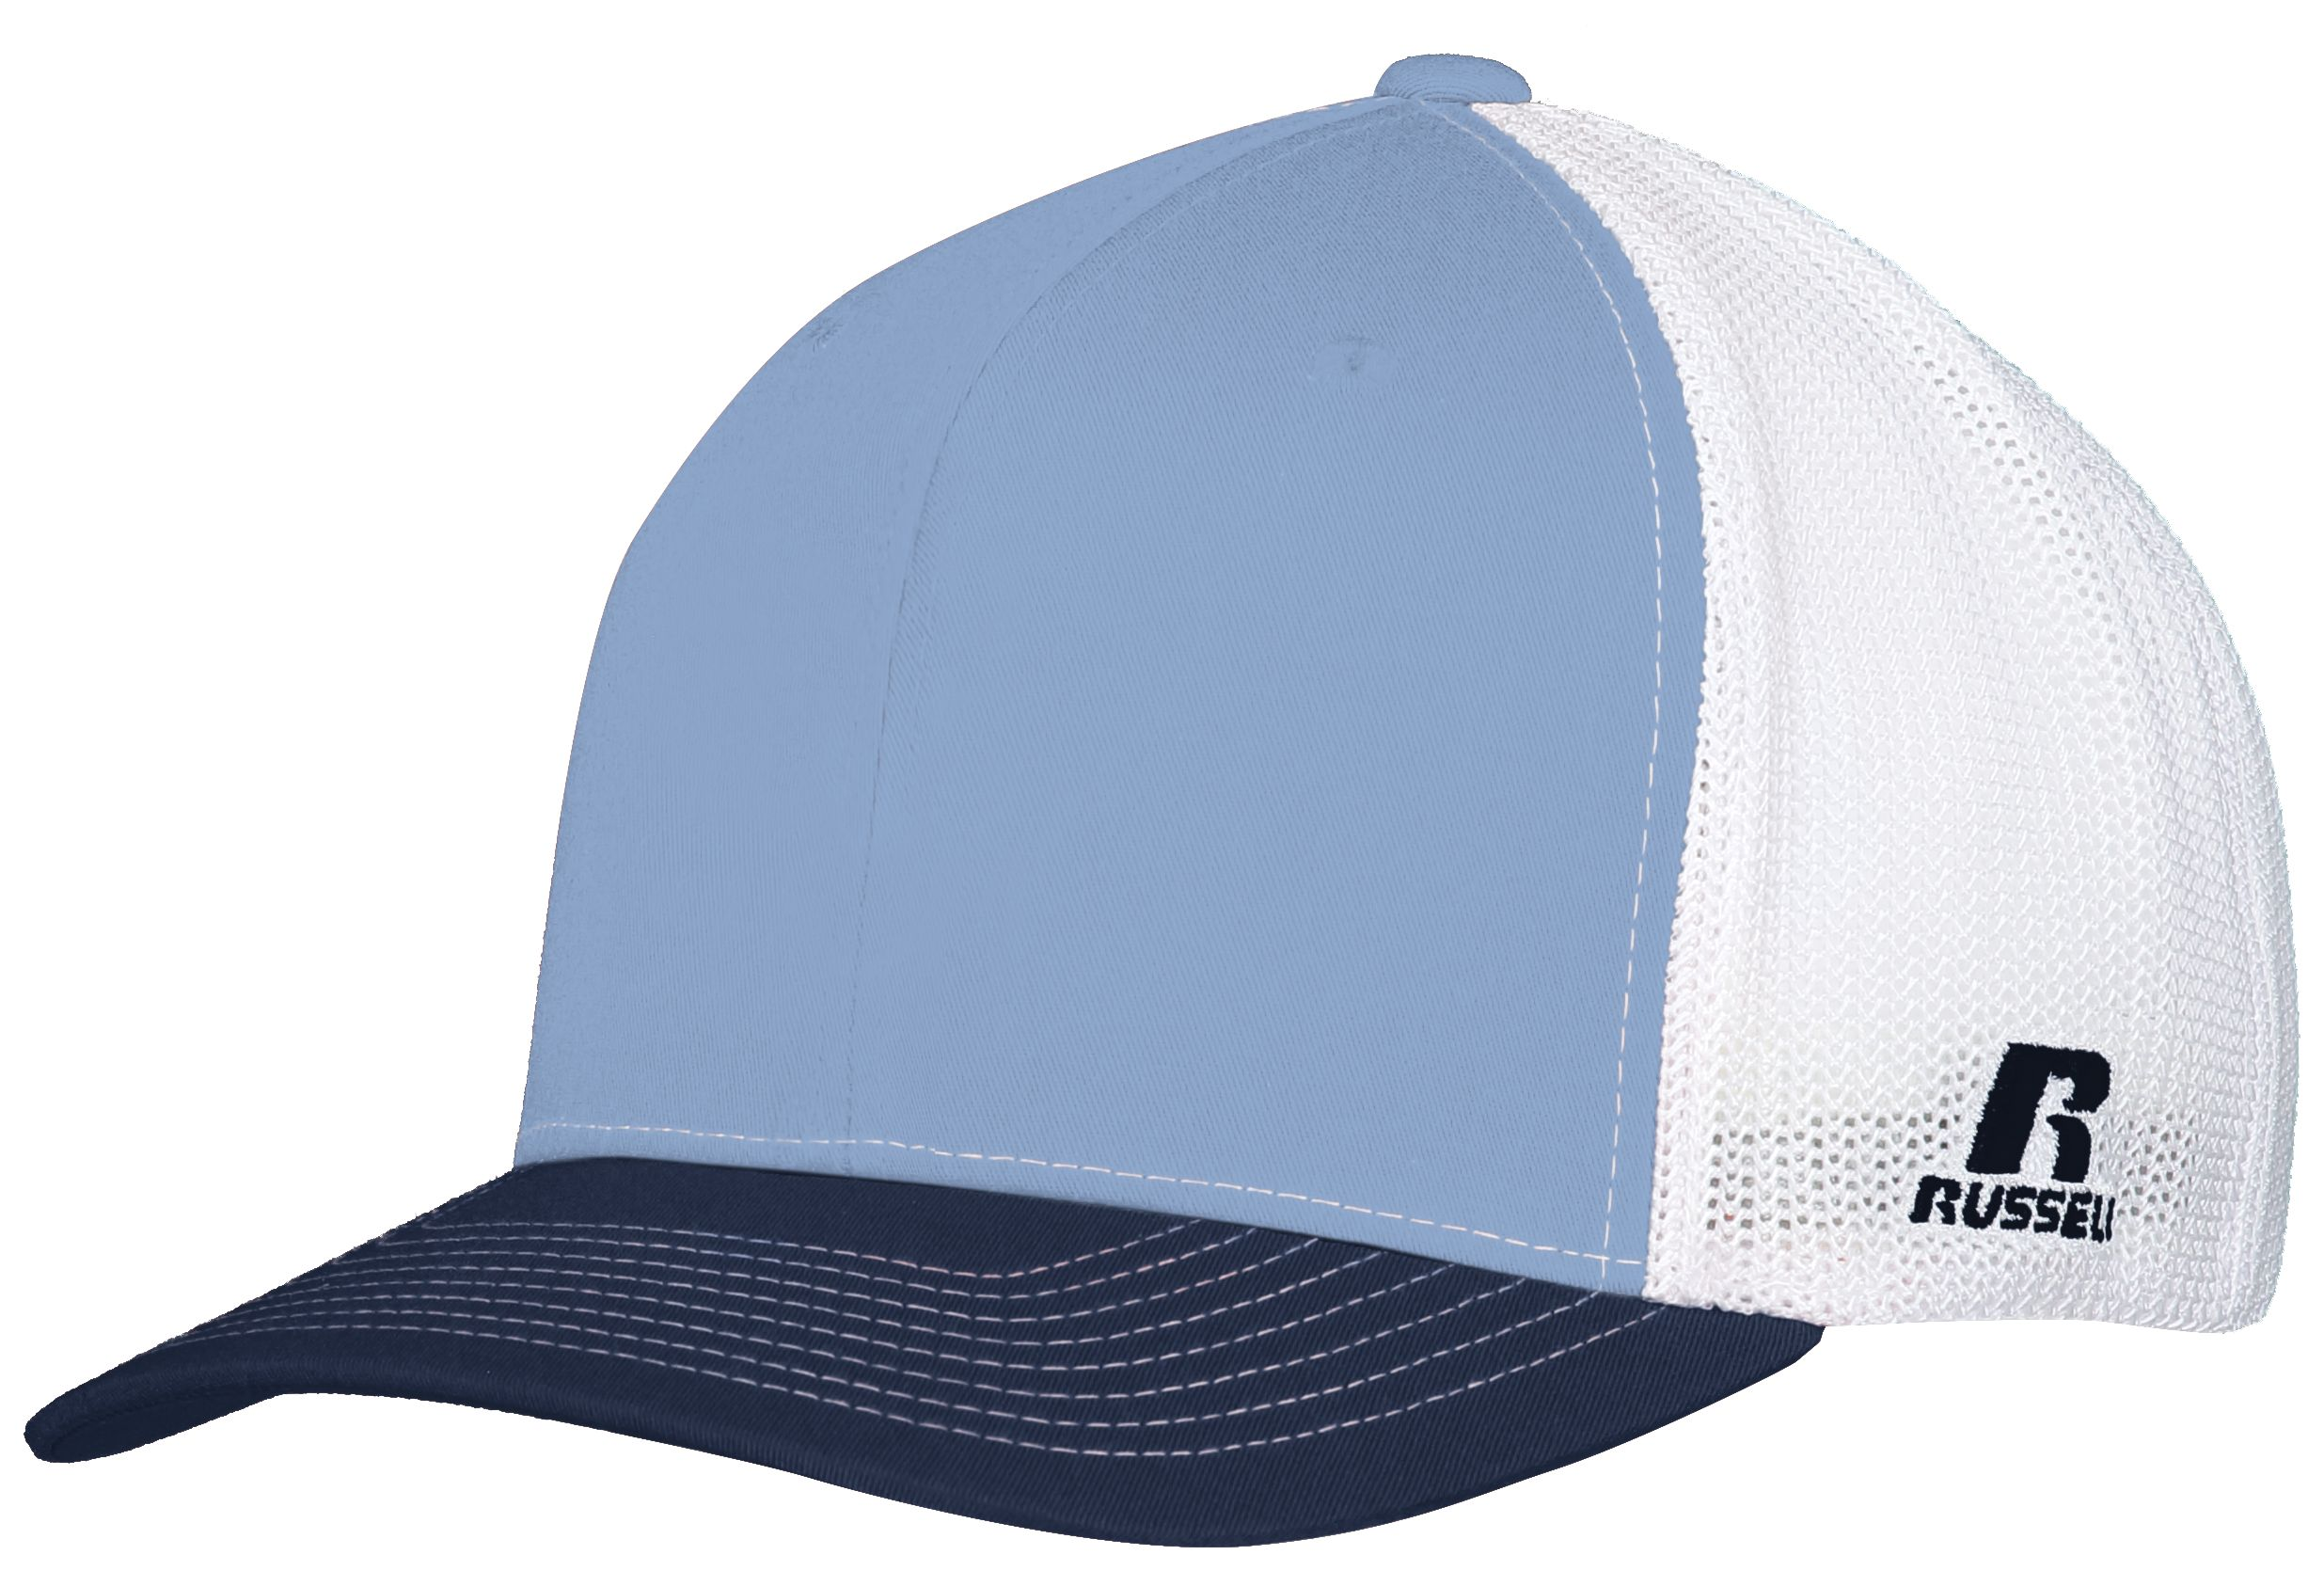 Youth Flexfit Twill Mesh Cap - COLUMBIA BLUE/NAVY/WHITE